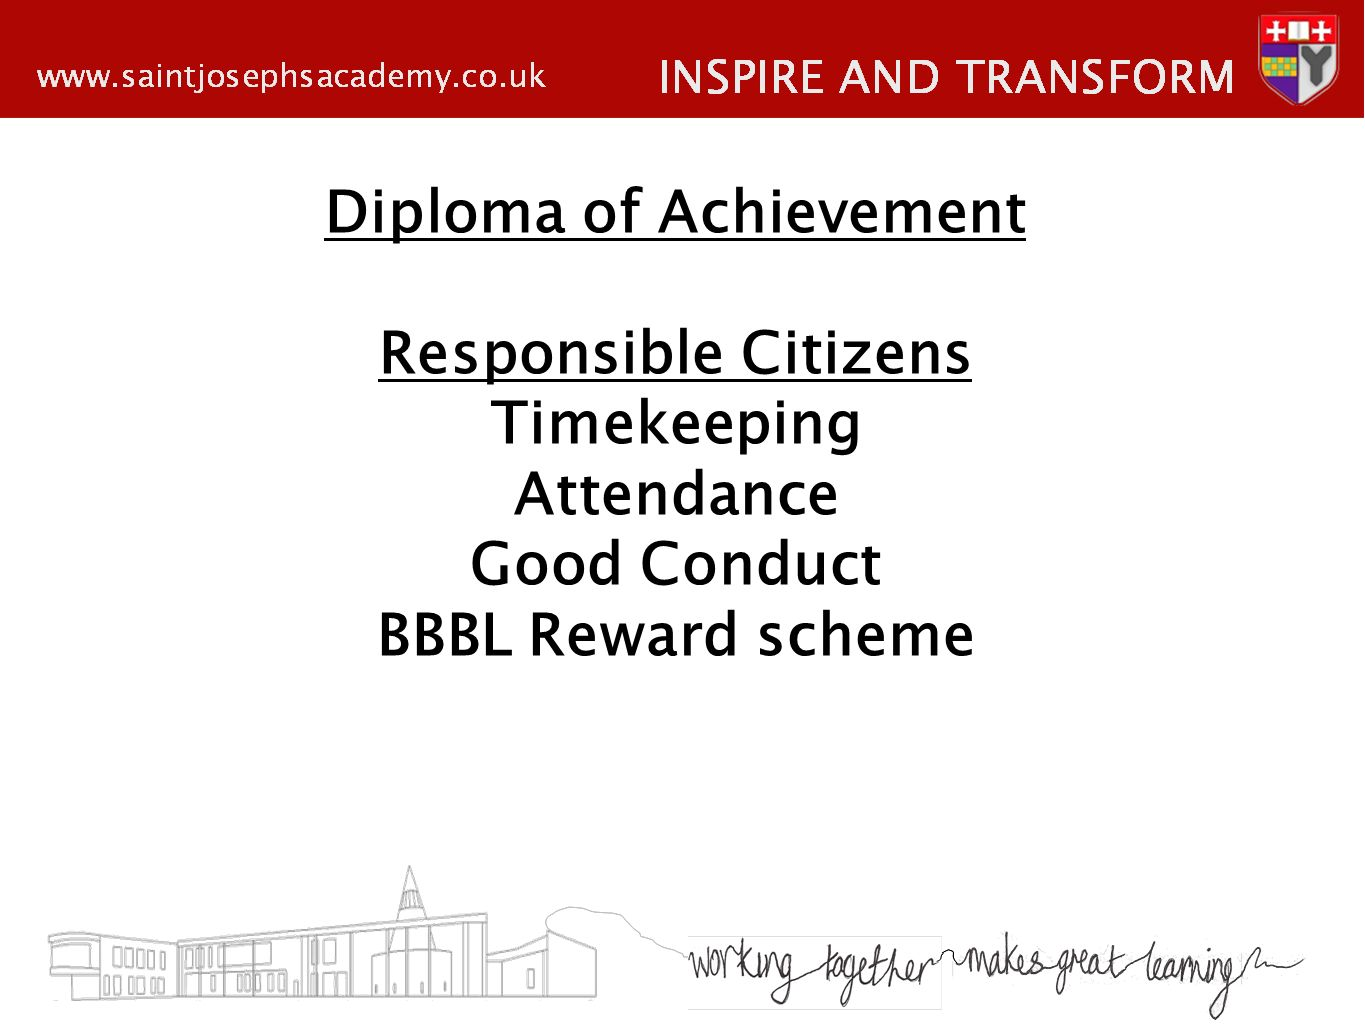 Diploma of Achievement Responsible Citizens Timekeeping Attendance Good Conduct BBBL Reward scheme